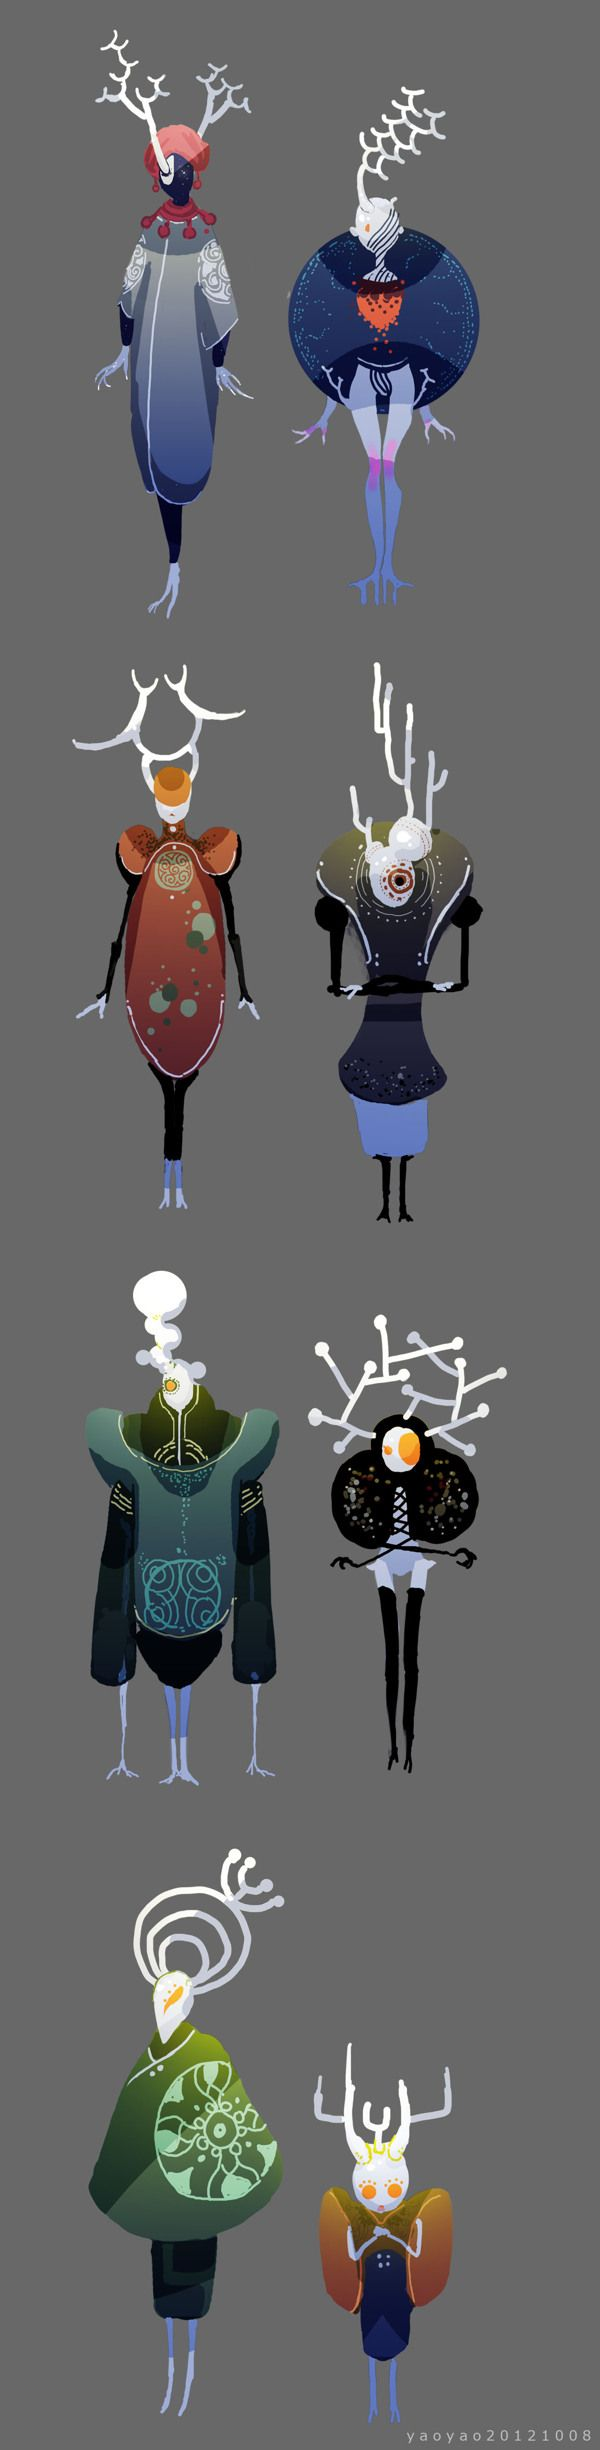 Character design and concept development - SHANLI - by yao yao are they based on cells? Molecules? Idk but it's cool